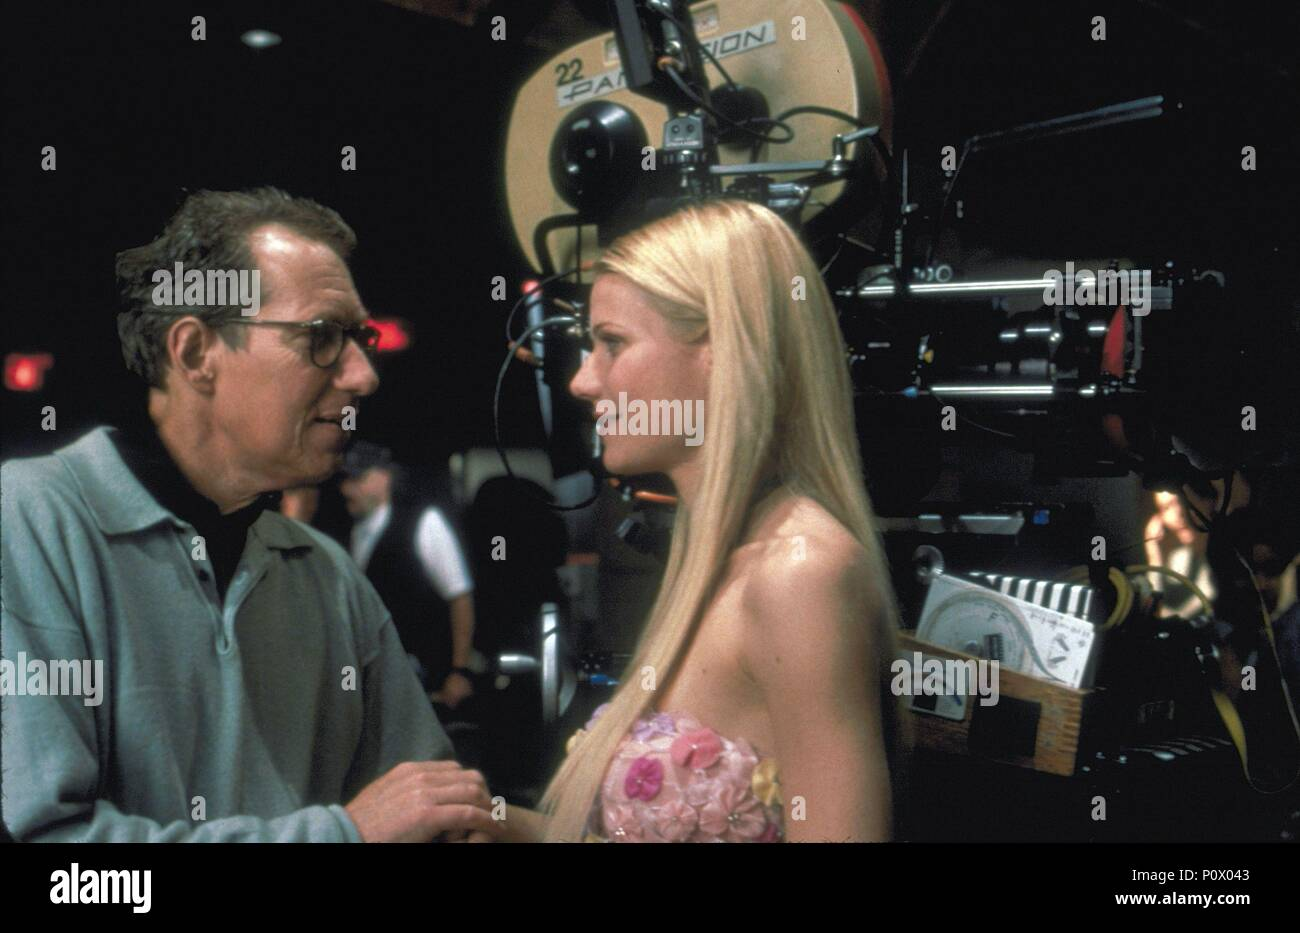 Original Film Title: DUETS.  English Title: DUETS.  Film Director: BRUCE PALTROW.  Year: 2000.  Stars: GWYNETH PALTROW; BRUCE PALTROW. Credit: HOLLYWOOD PICTURES / Album - Stock Image